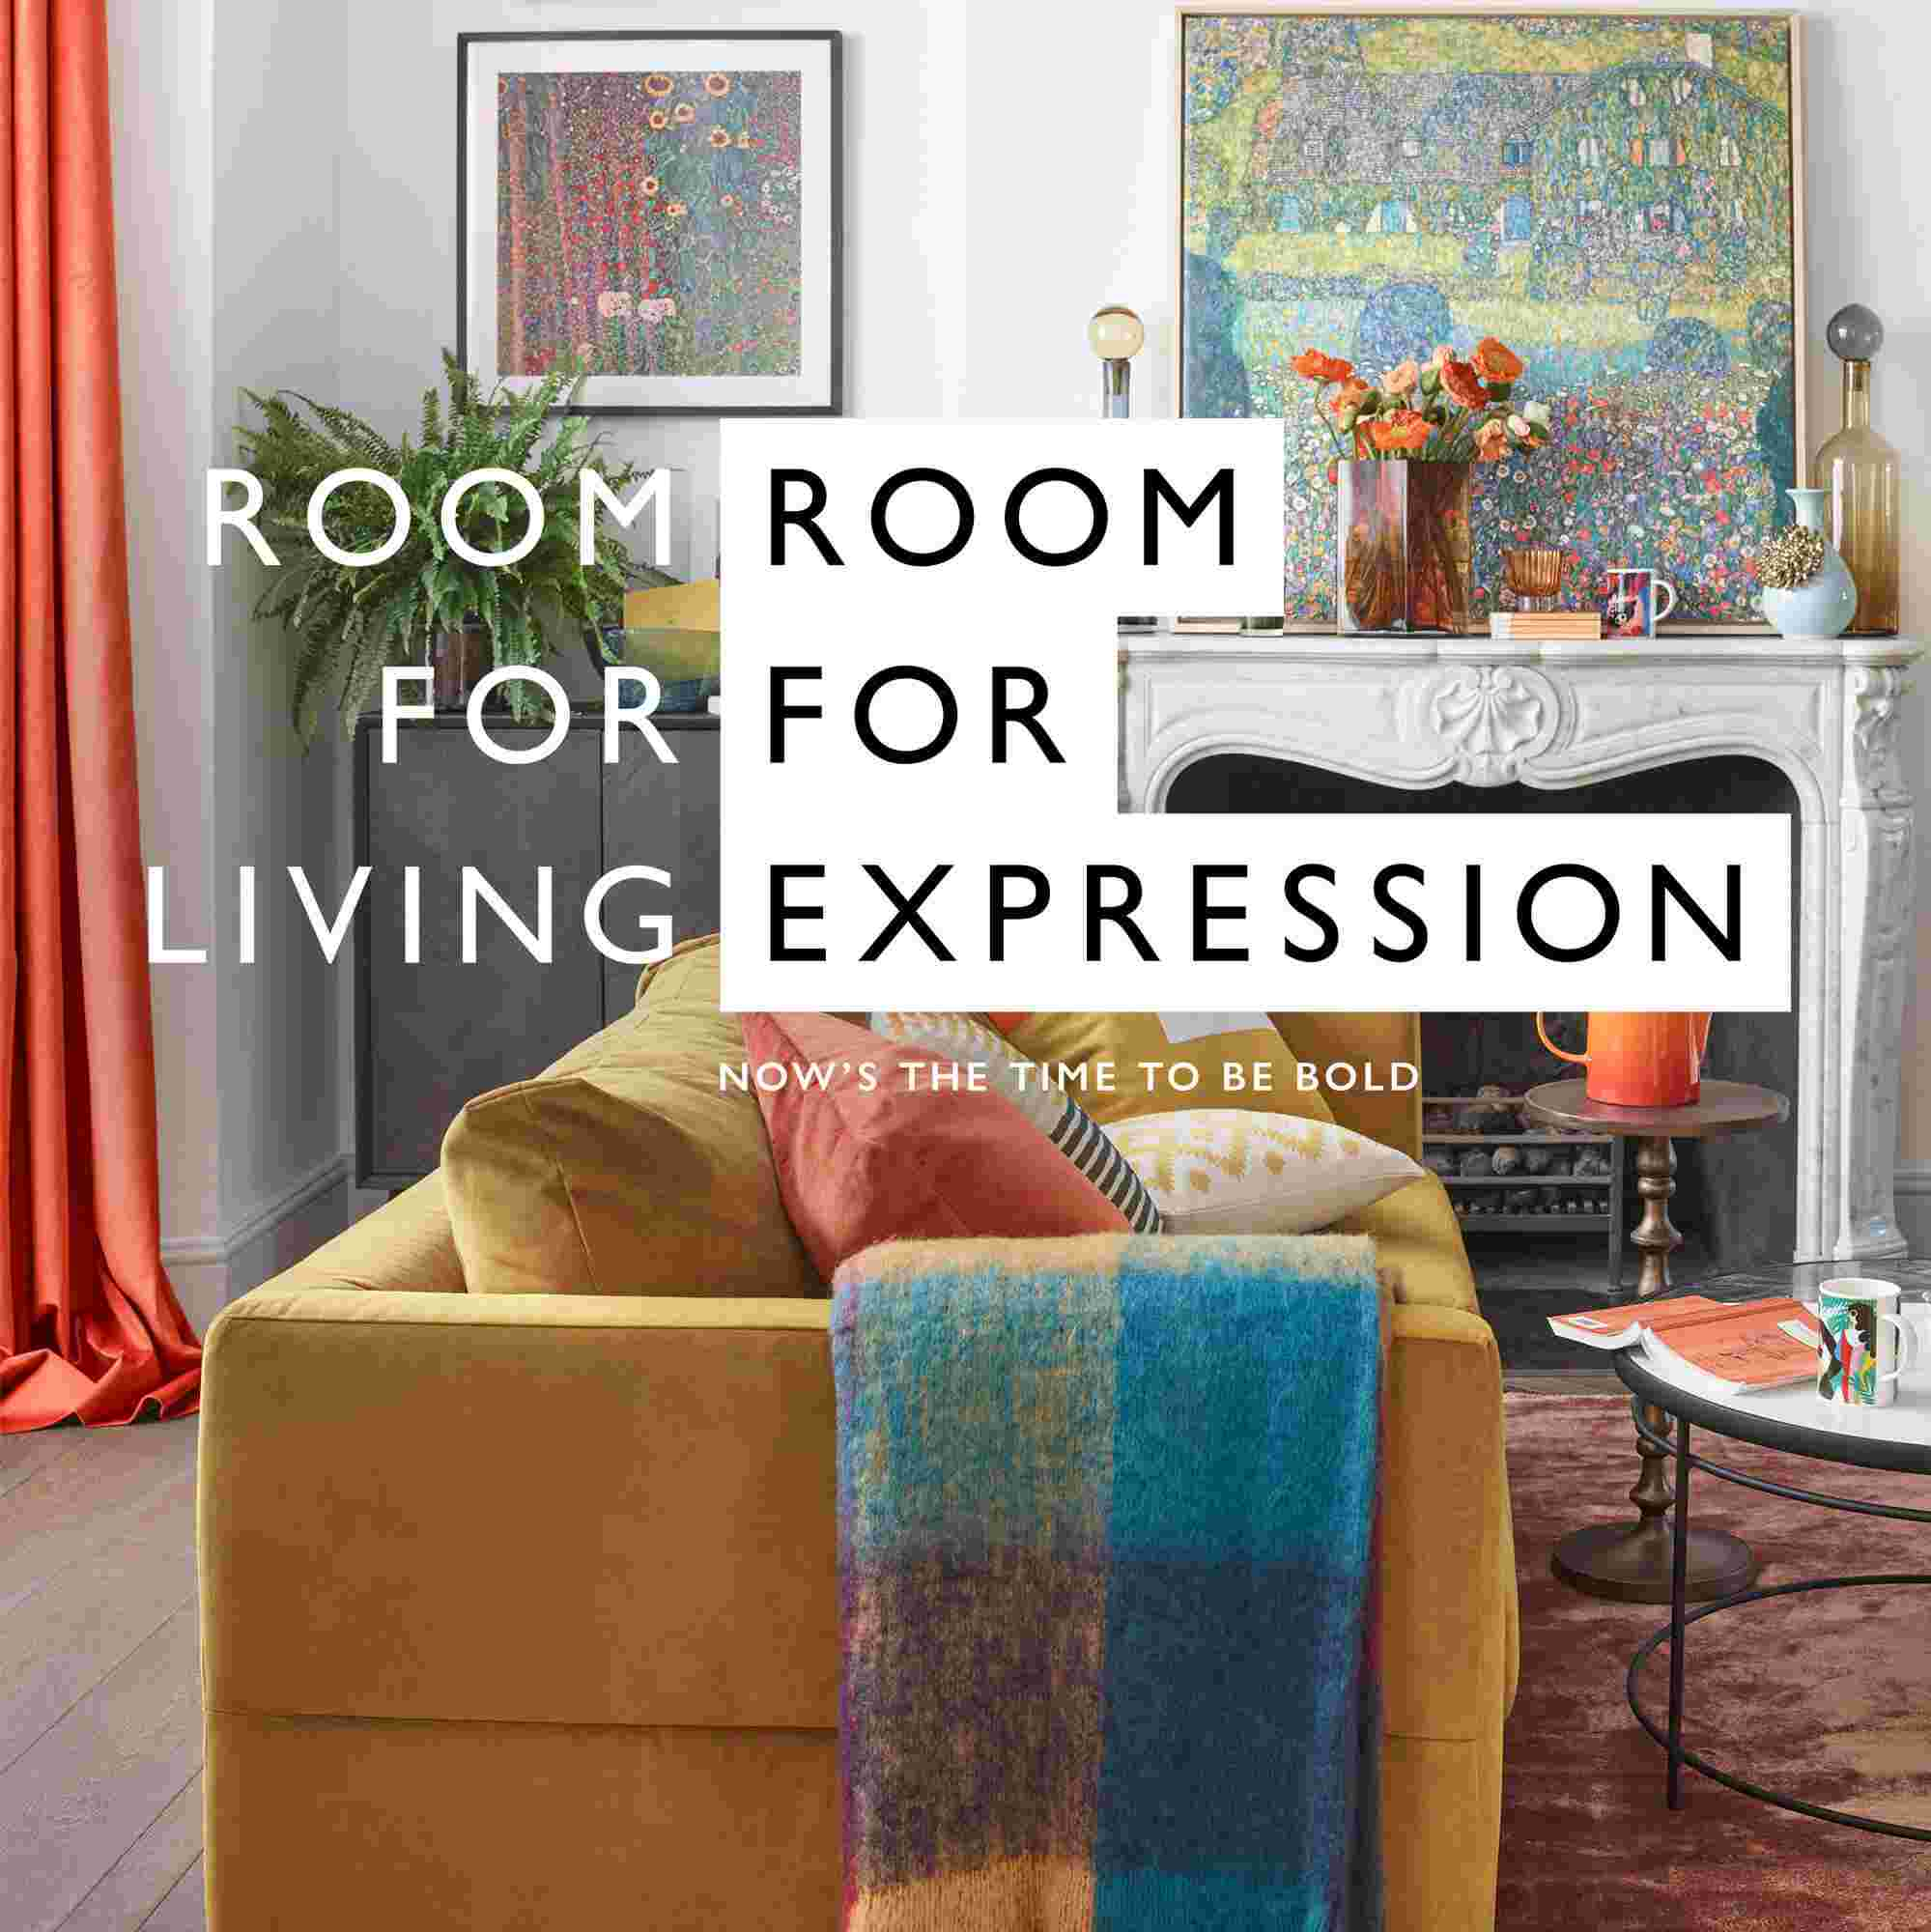 Room for Expression